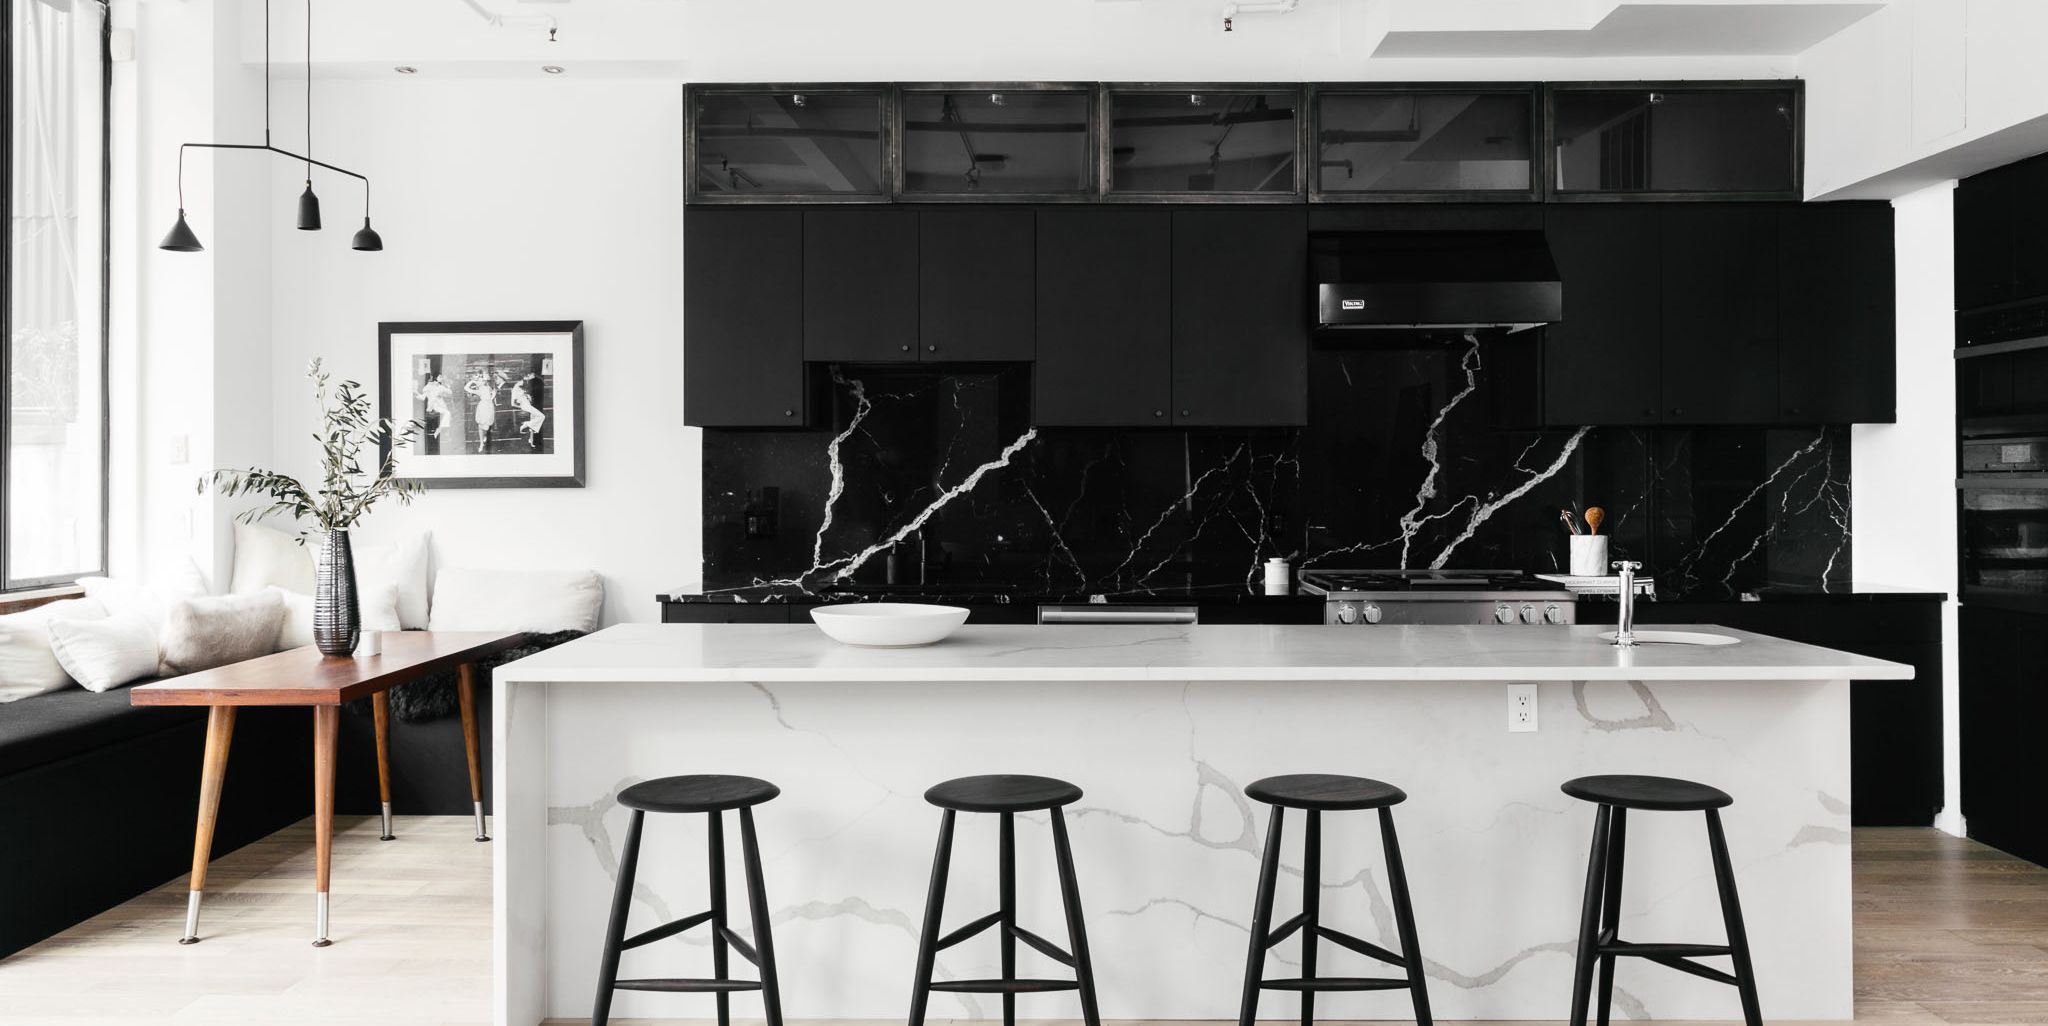 23 Modern Cabinet Ideas For a Streamlined Kitchen